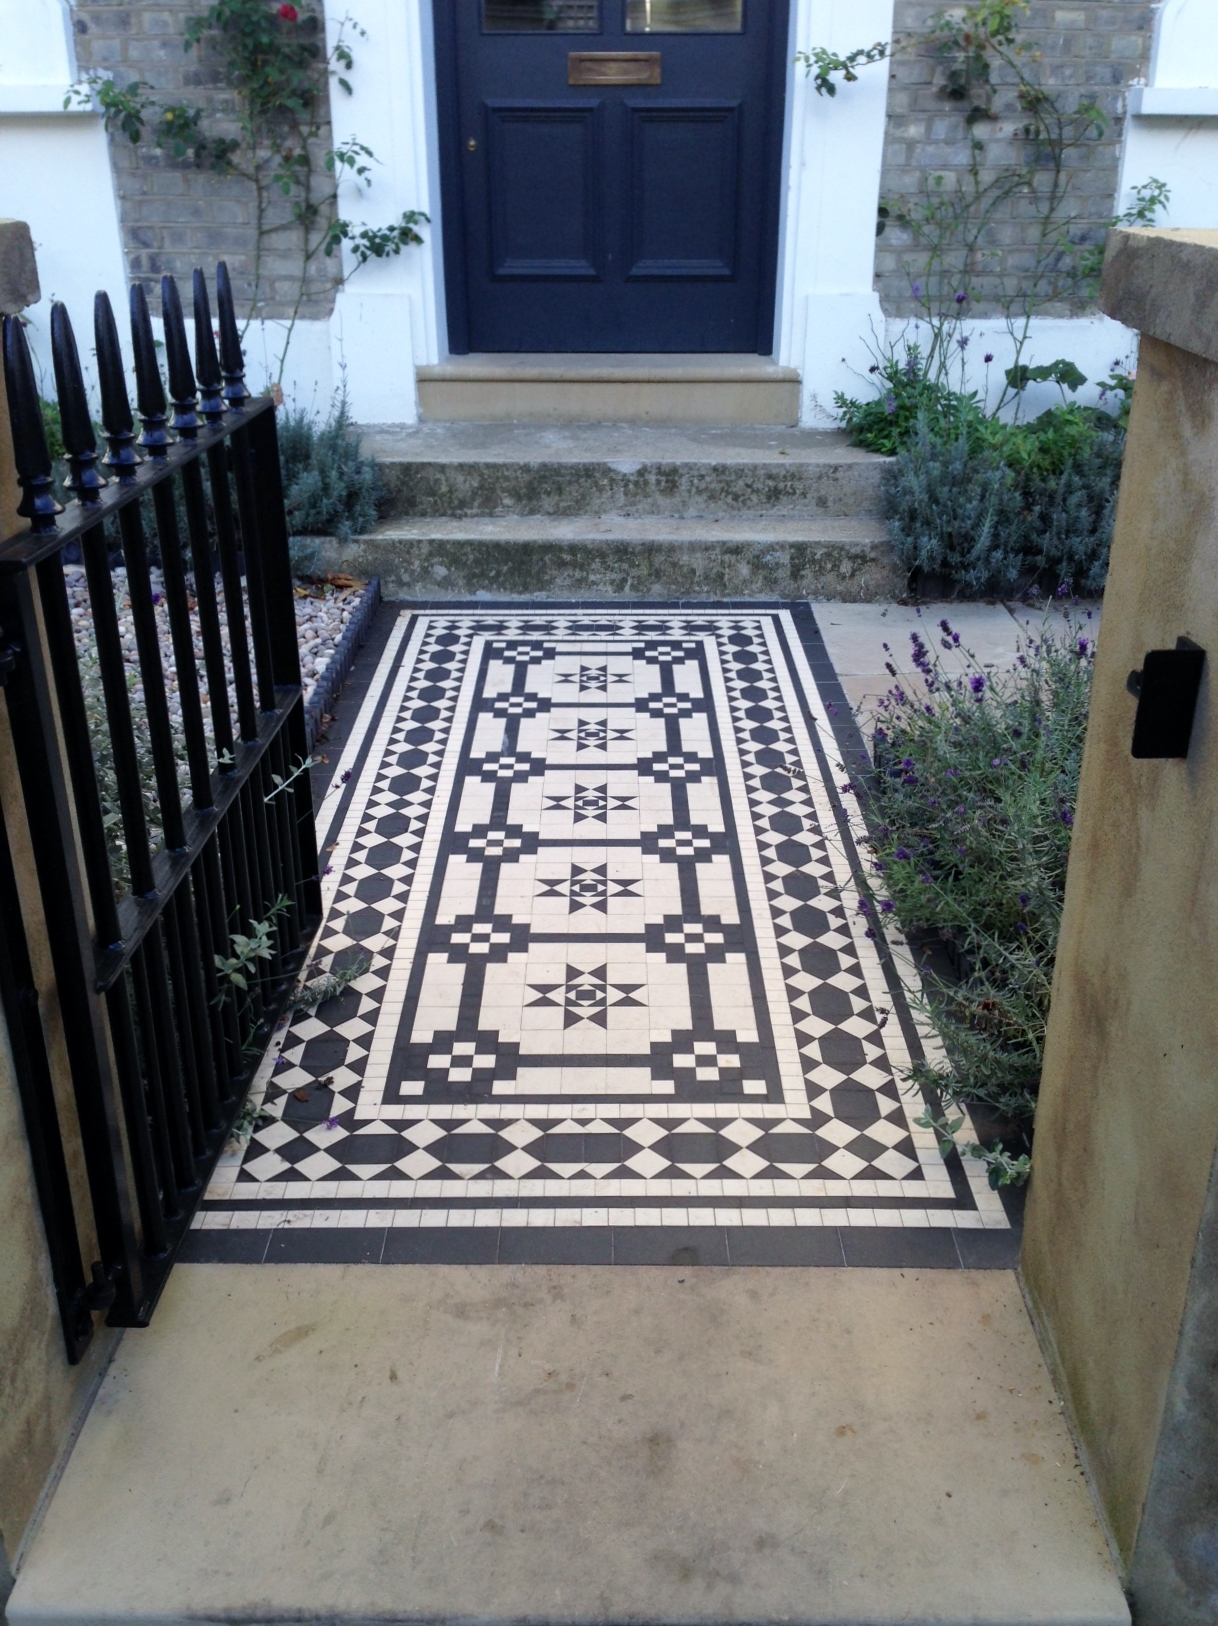 Islington Victorian mosaic tile path York stone sandstone paving wrought iron rails and gate London (33)